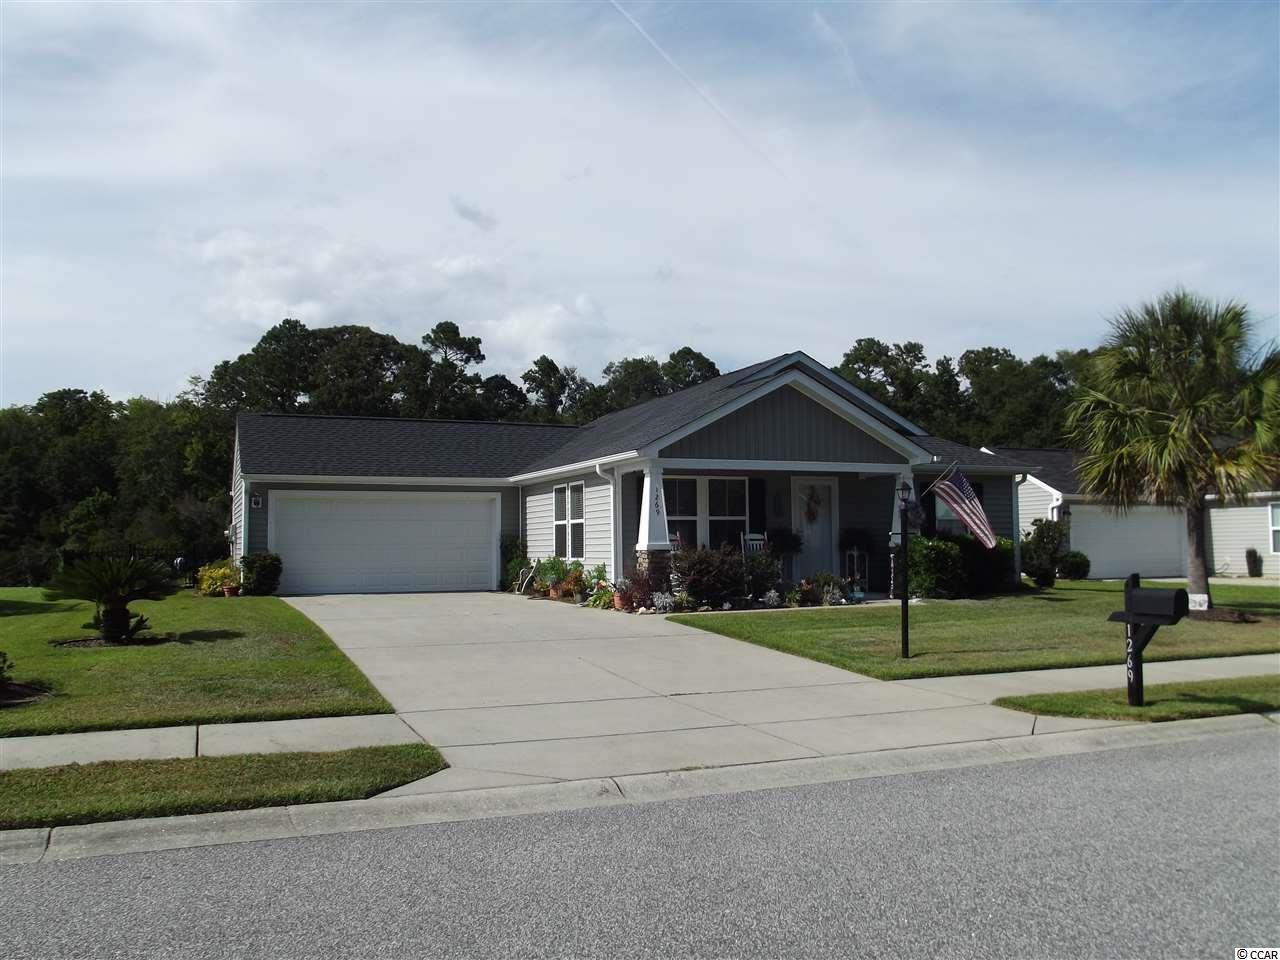 Move in Ready home overlooking a lake, with fenced in yard and storage building. Very low HOA. Stainless Steel Appliances. Garage is insulated and Speaker on back patio.